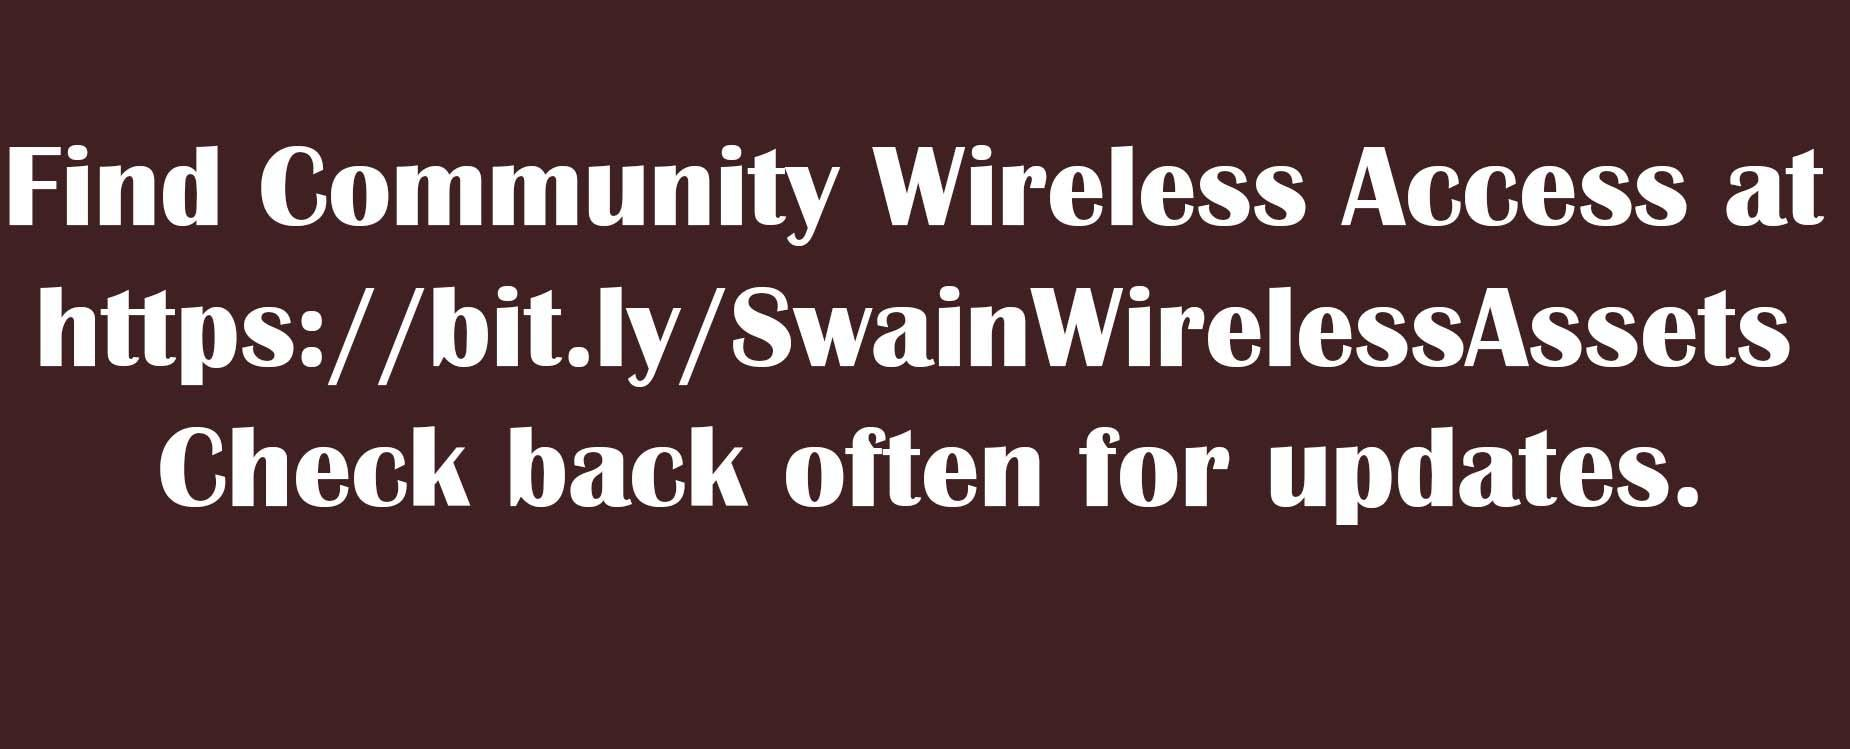 community wireless